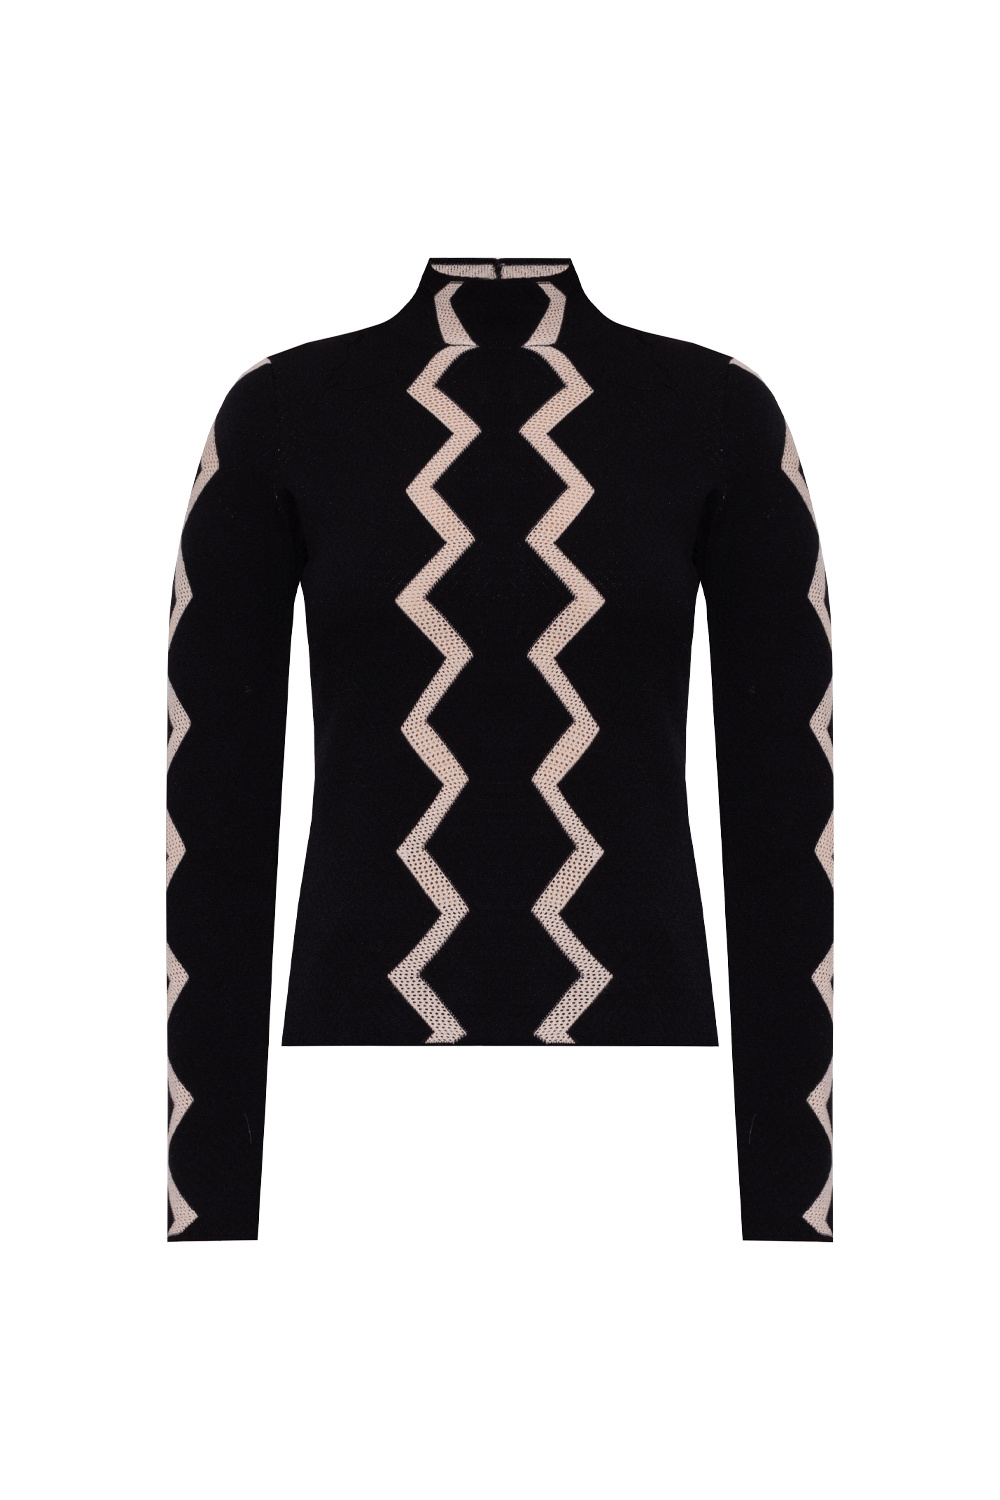 Emporio Armani Sweater with stitching details